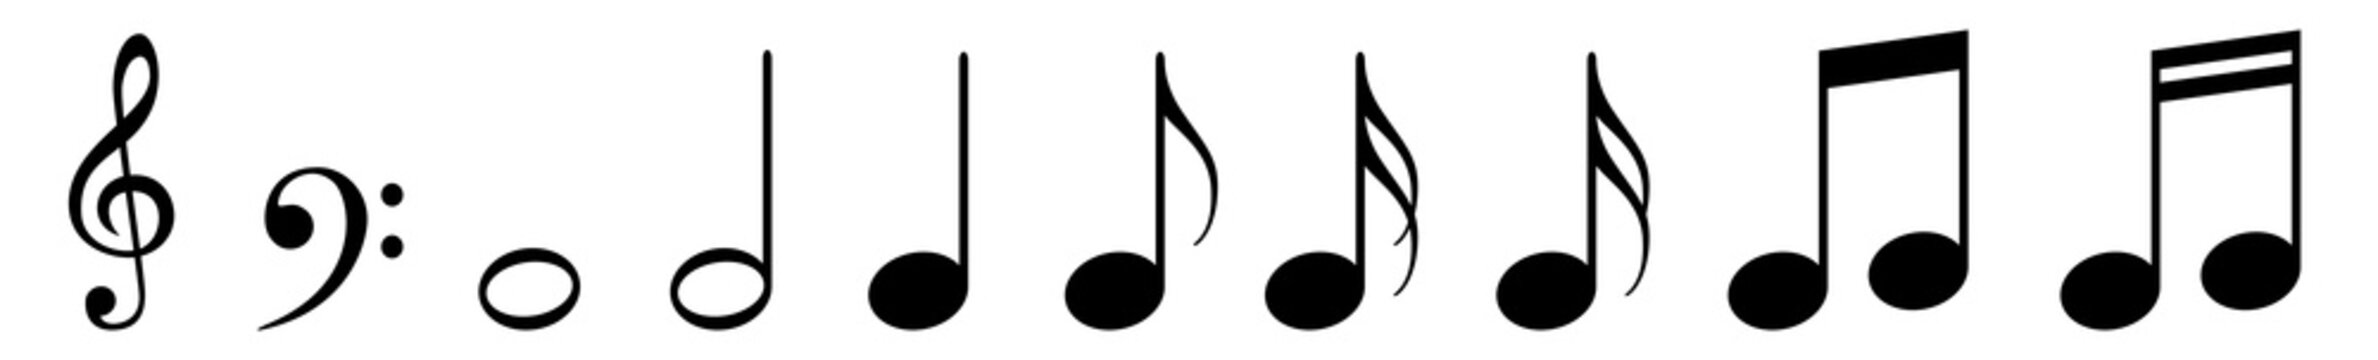 Music Notes Icon Black | Note Illustration | Clef Symbol | Sound Logo | Tone Sign | Isolated | Variations